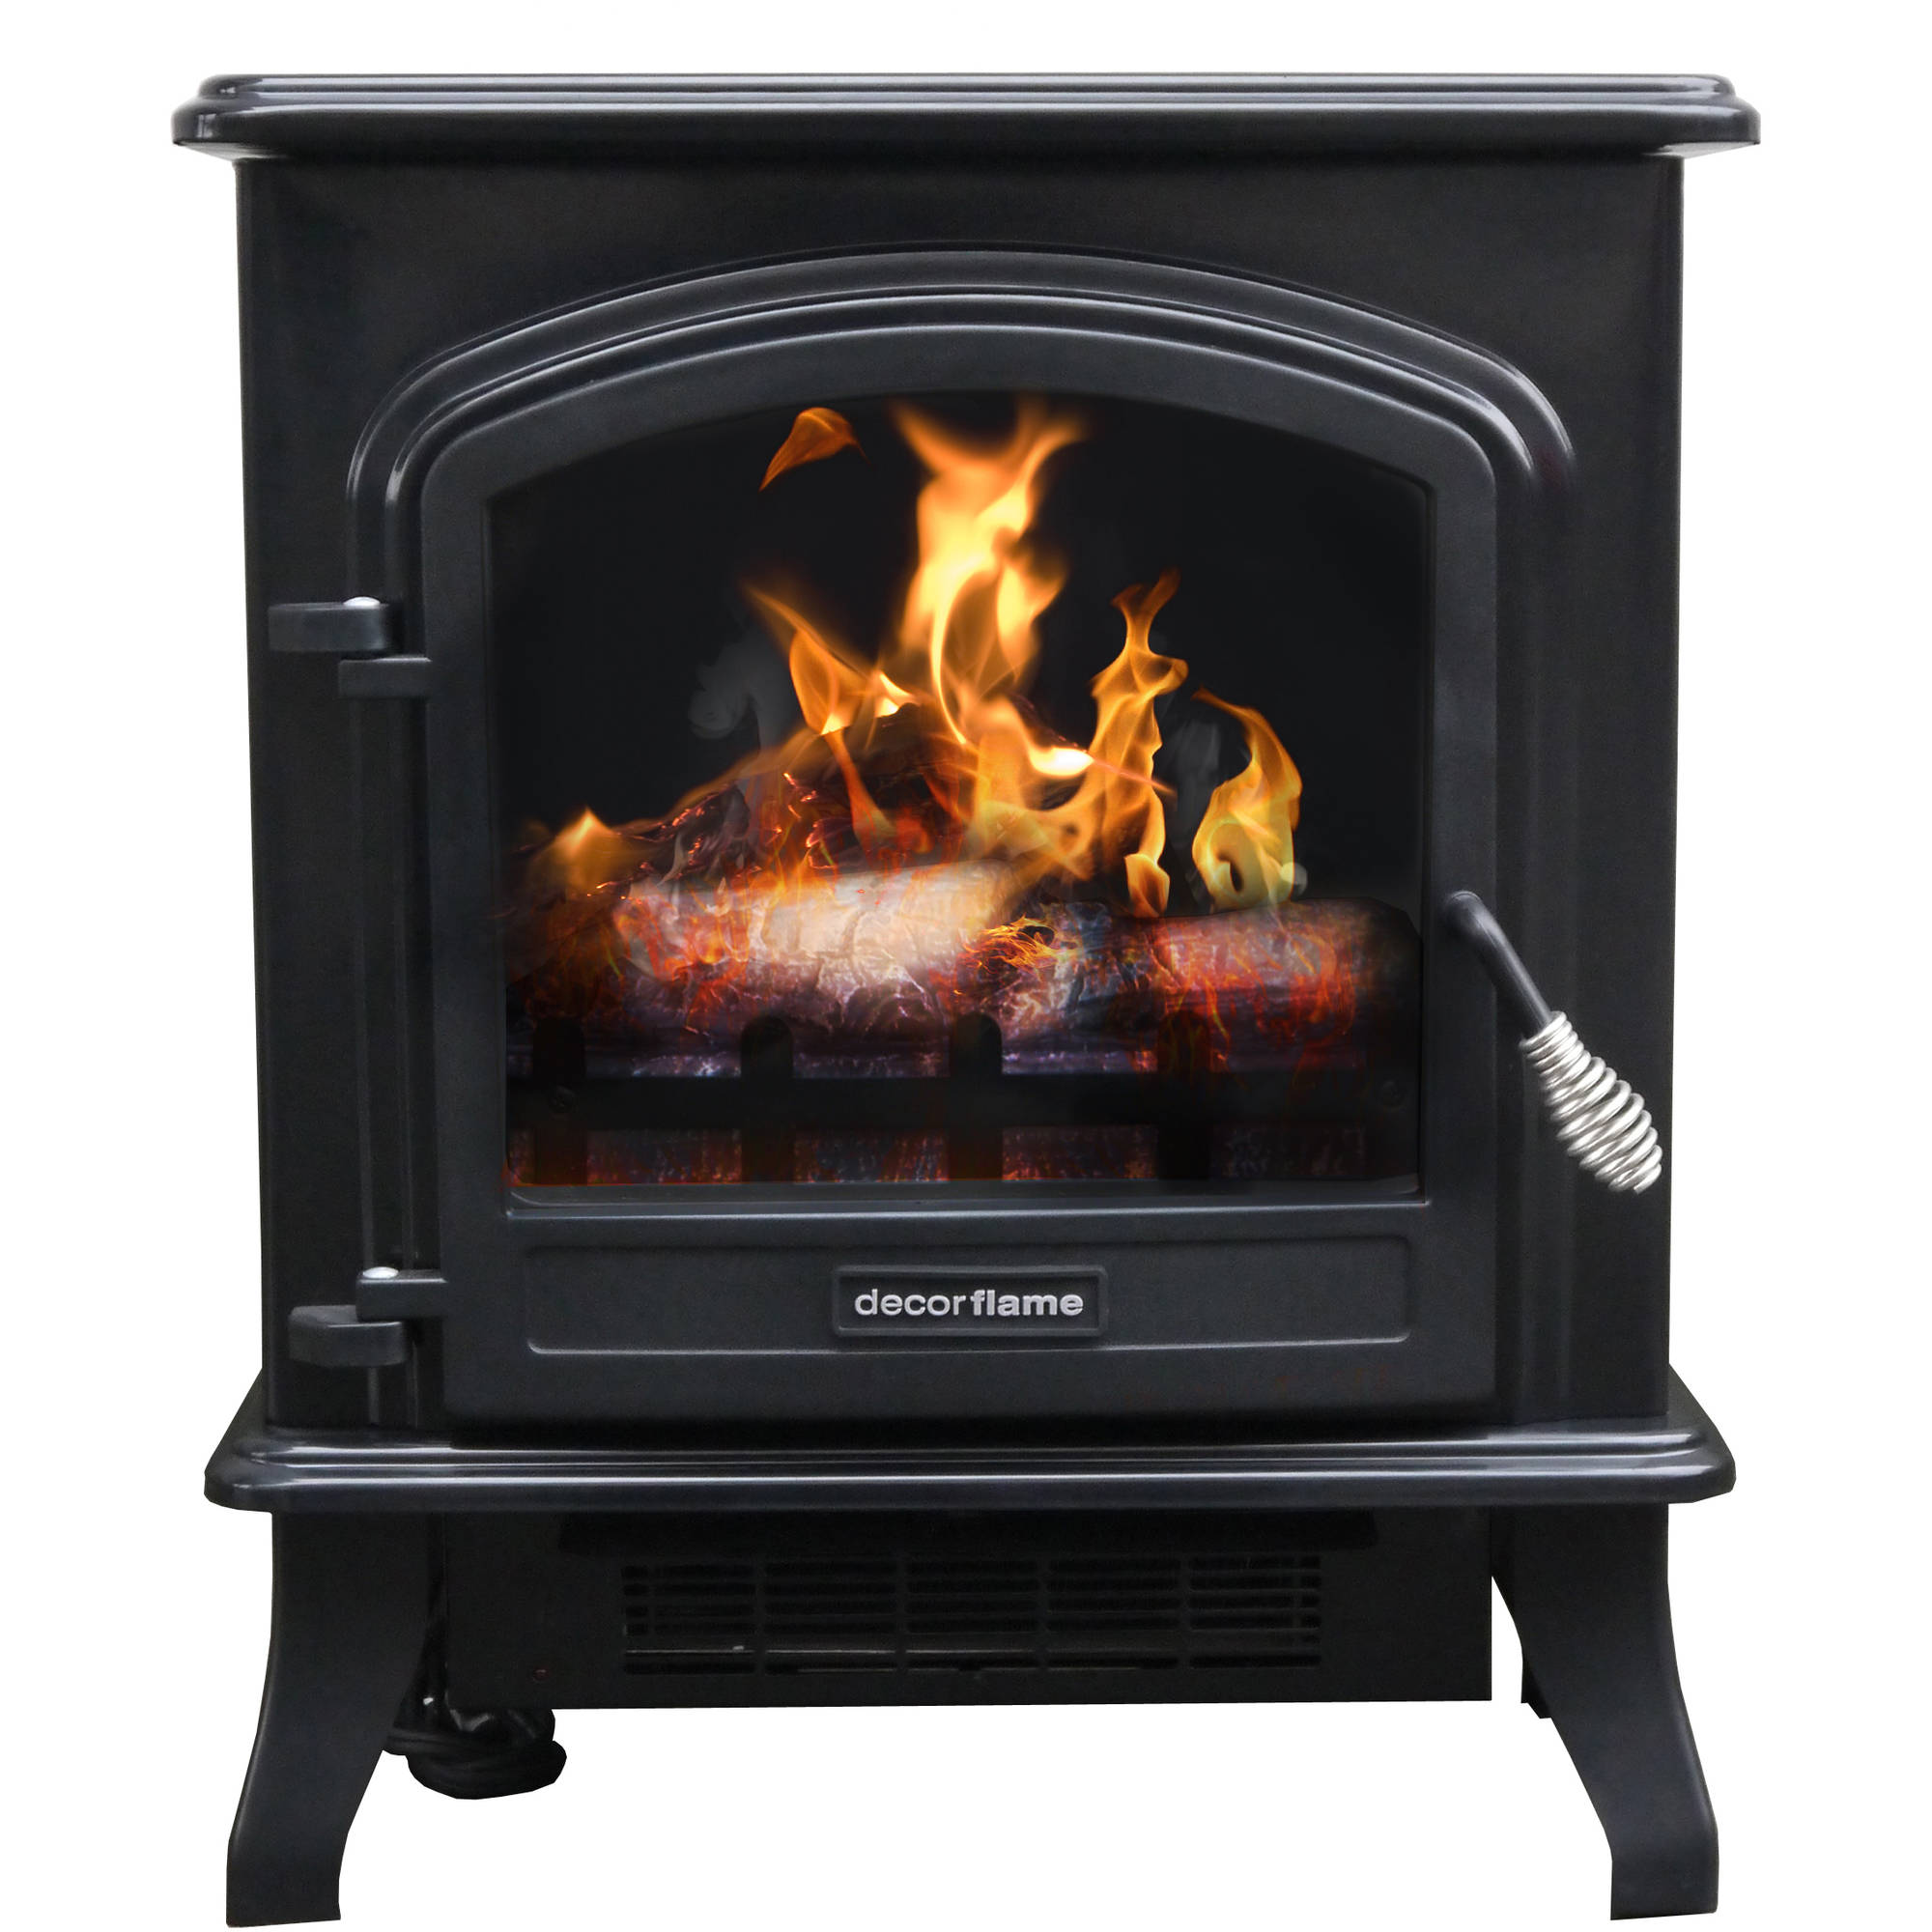 Decor Flame Infrared Stove Heater, QCIH413-GBKP